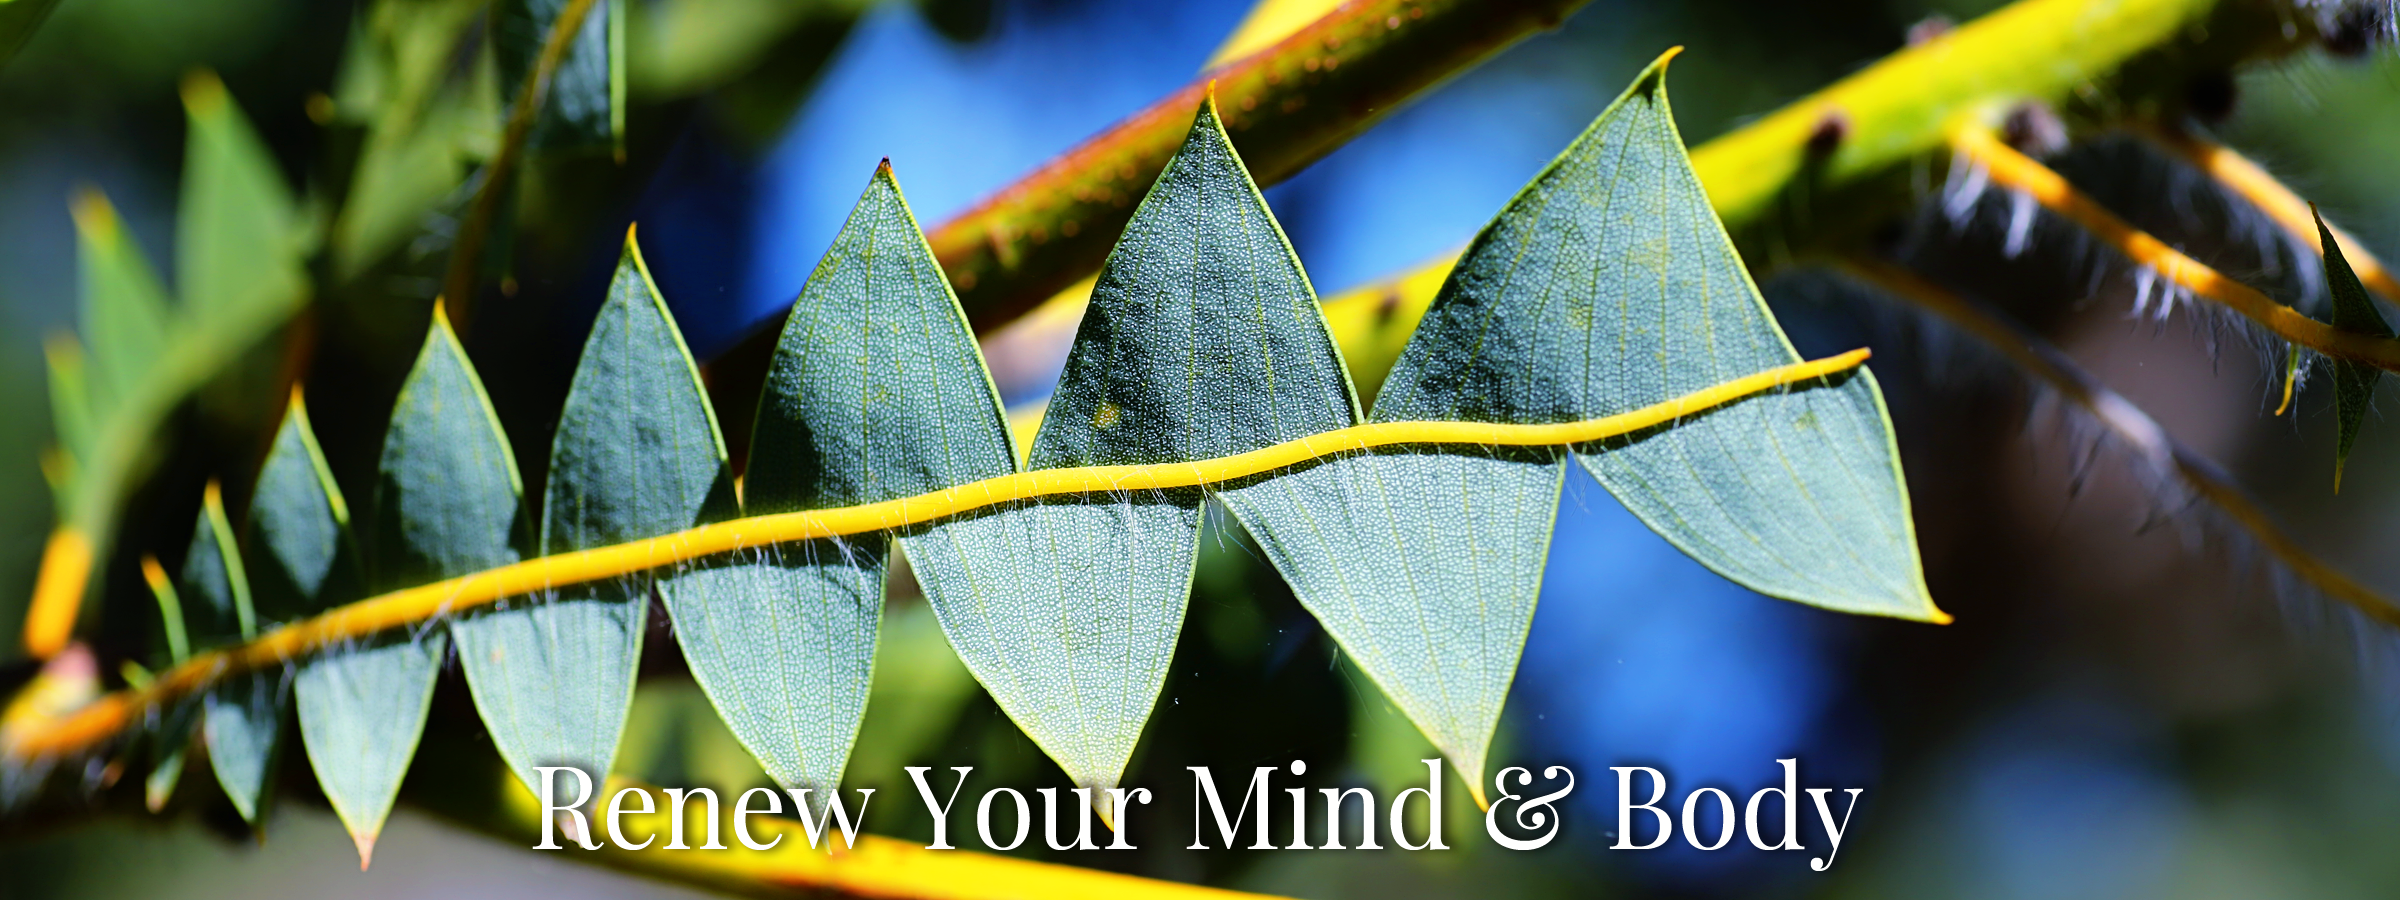 Renew Your Mind and Body